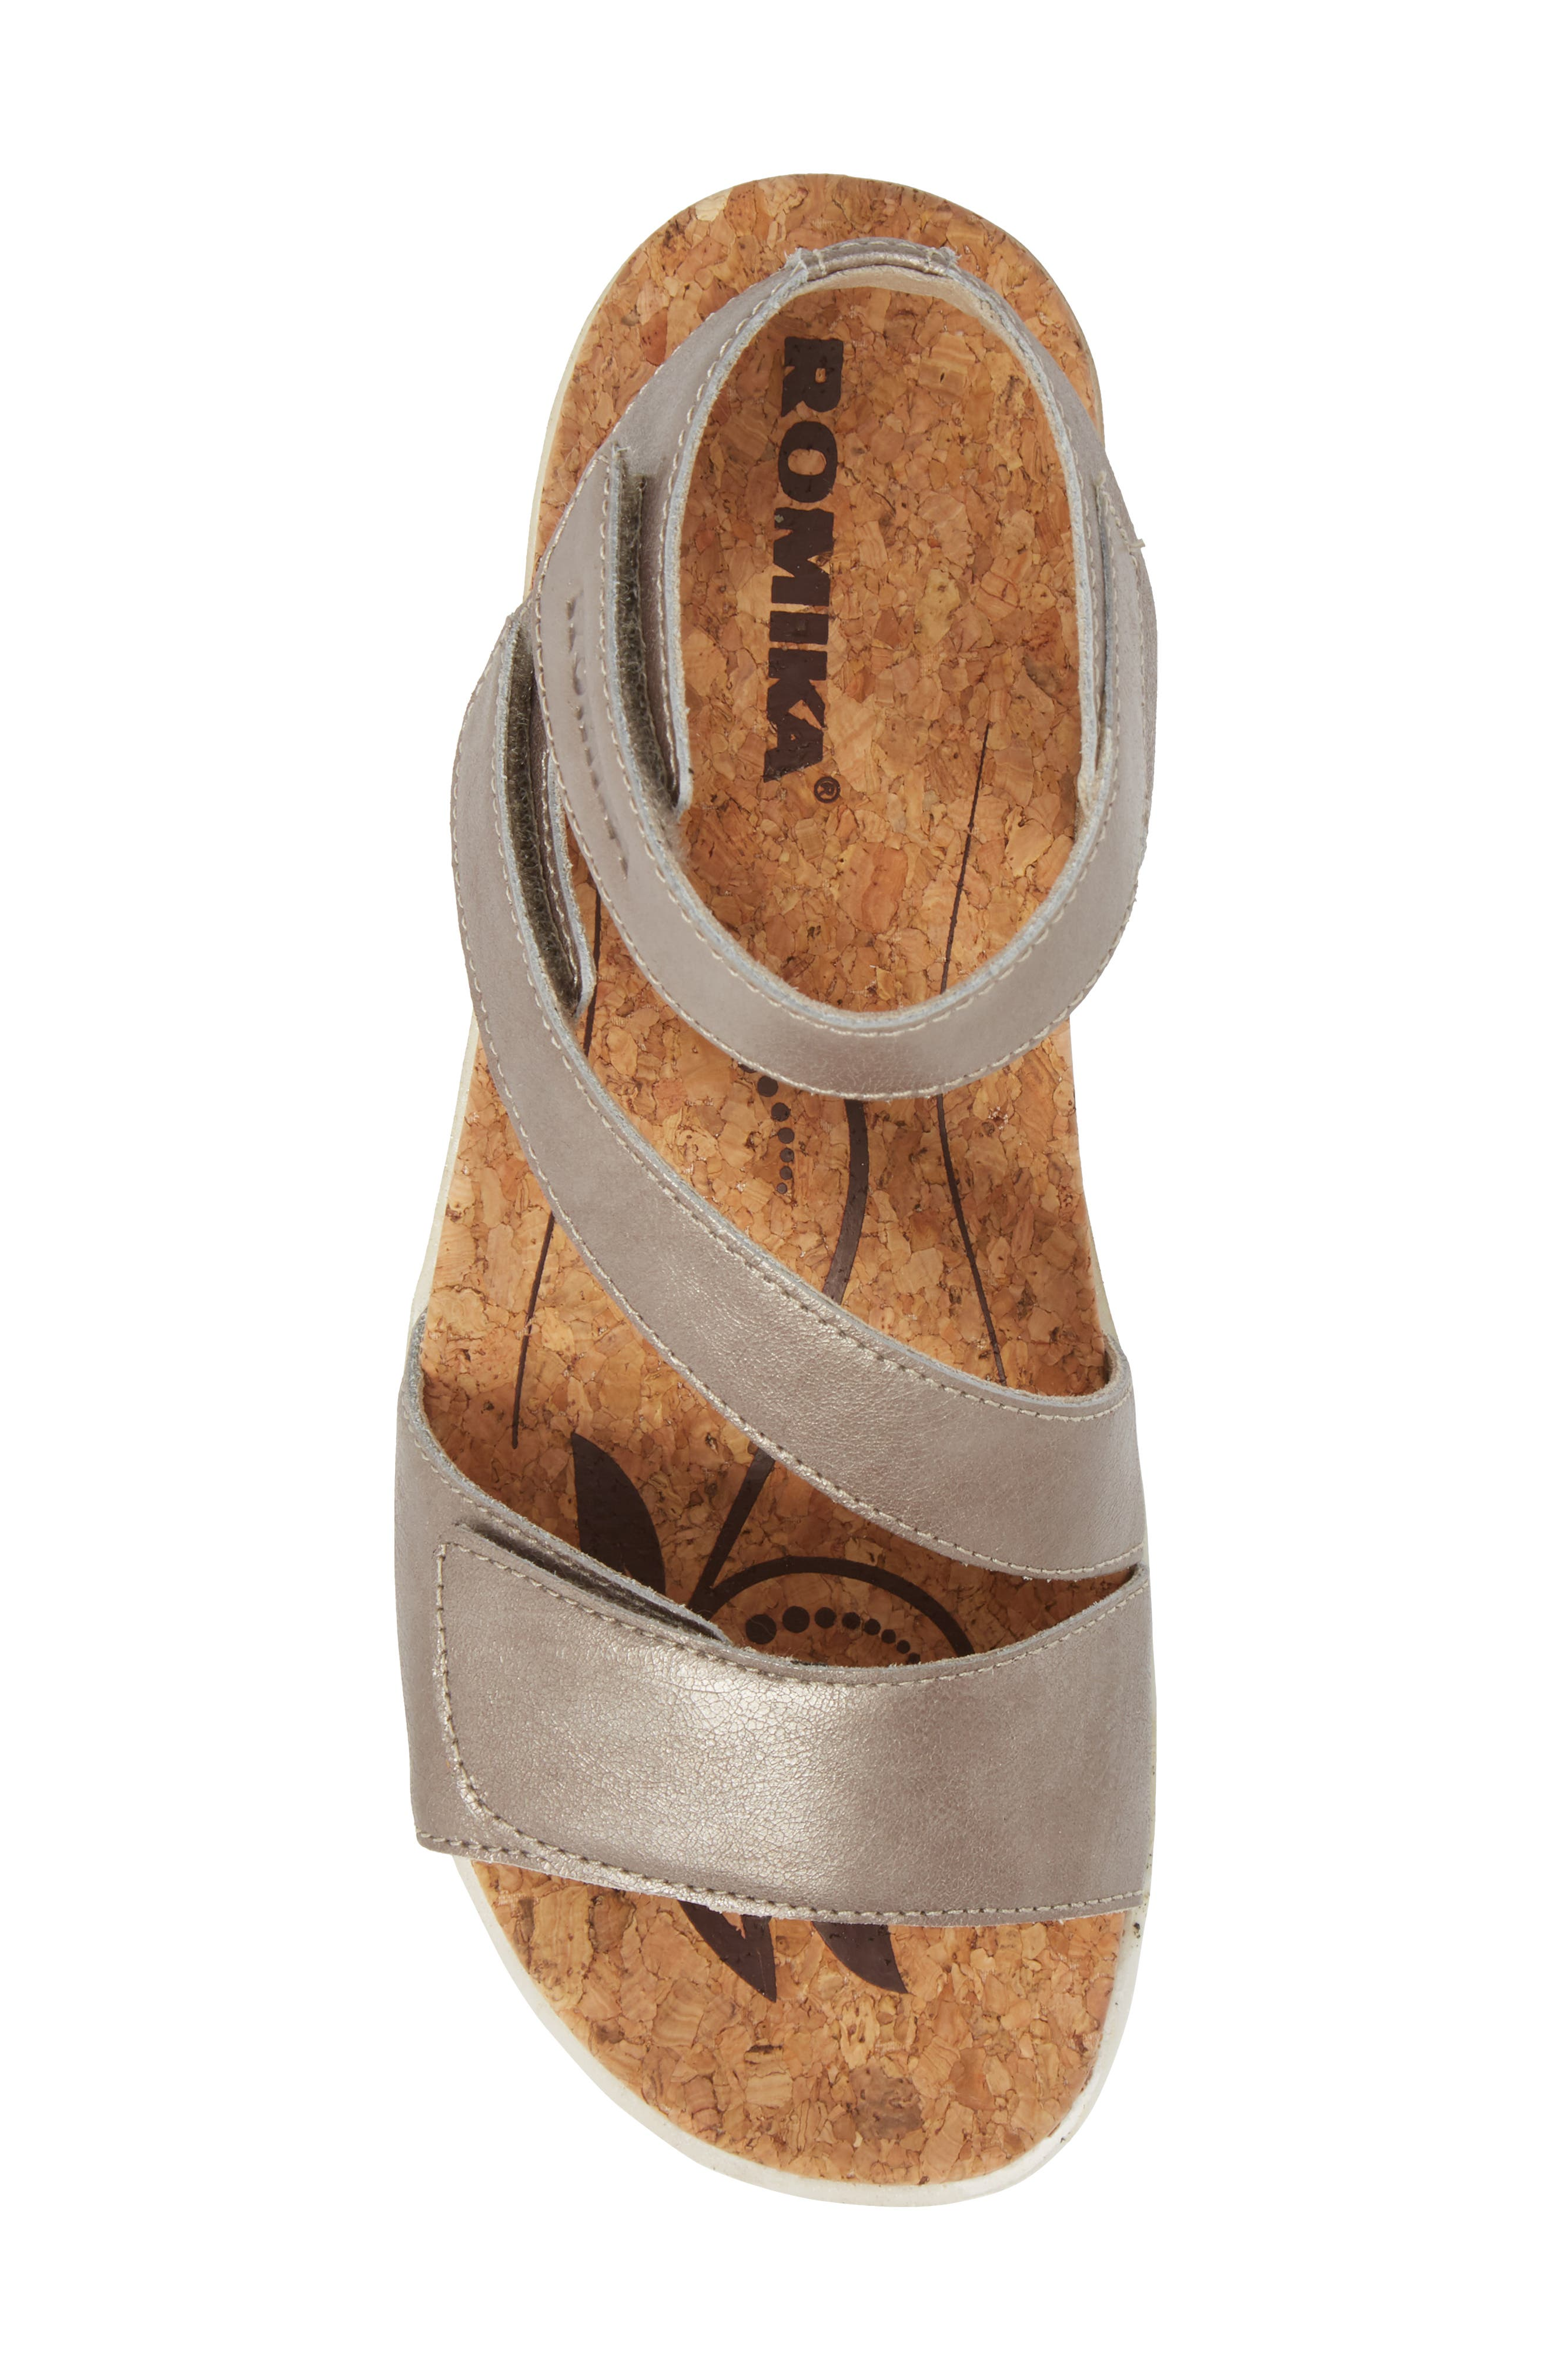 ROMIKA<SUP>®</SUP>, Hollywood 04 Sandal, Alternate thumbnail 5, color, PLATINUM LEATHER